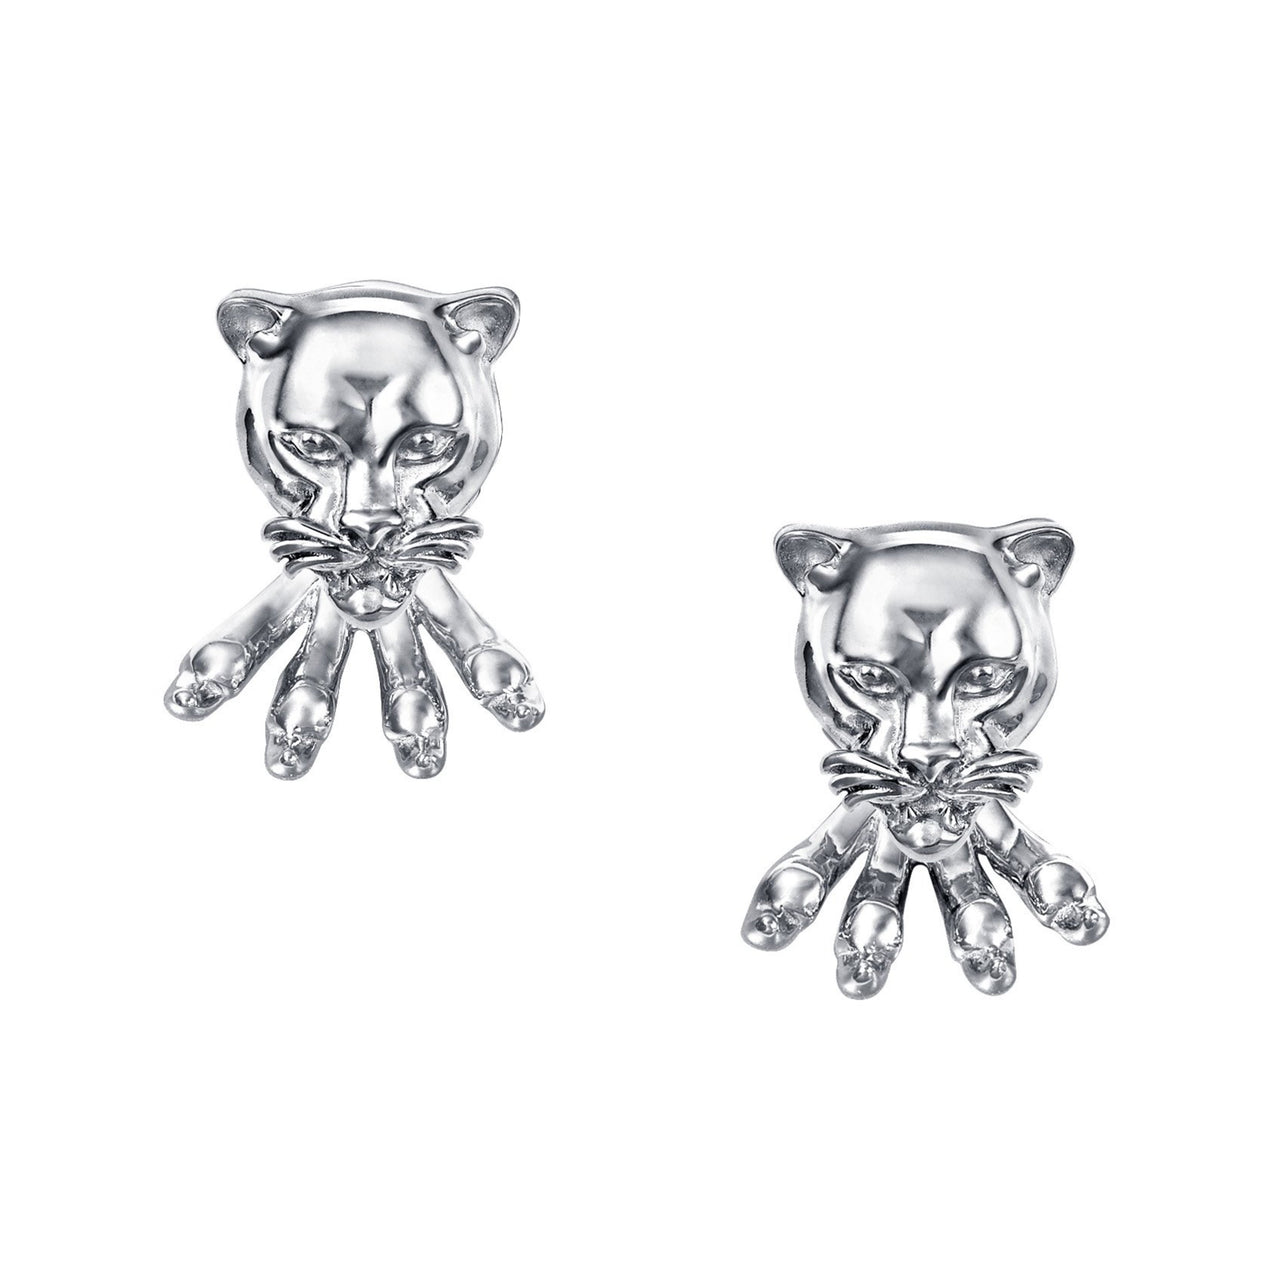 Leopard Stud Earrings with claws Silver